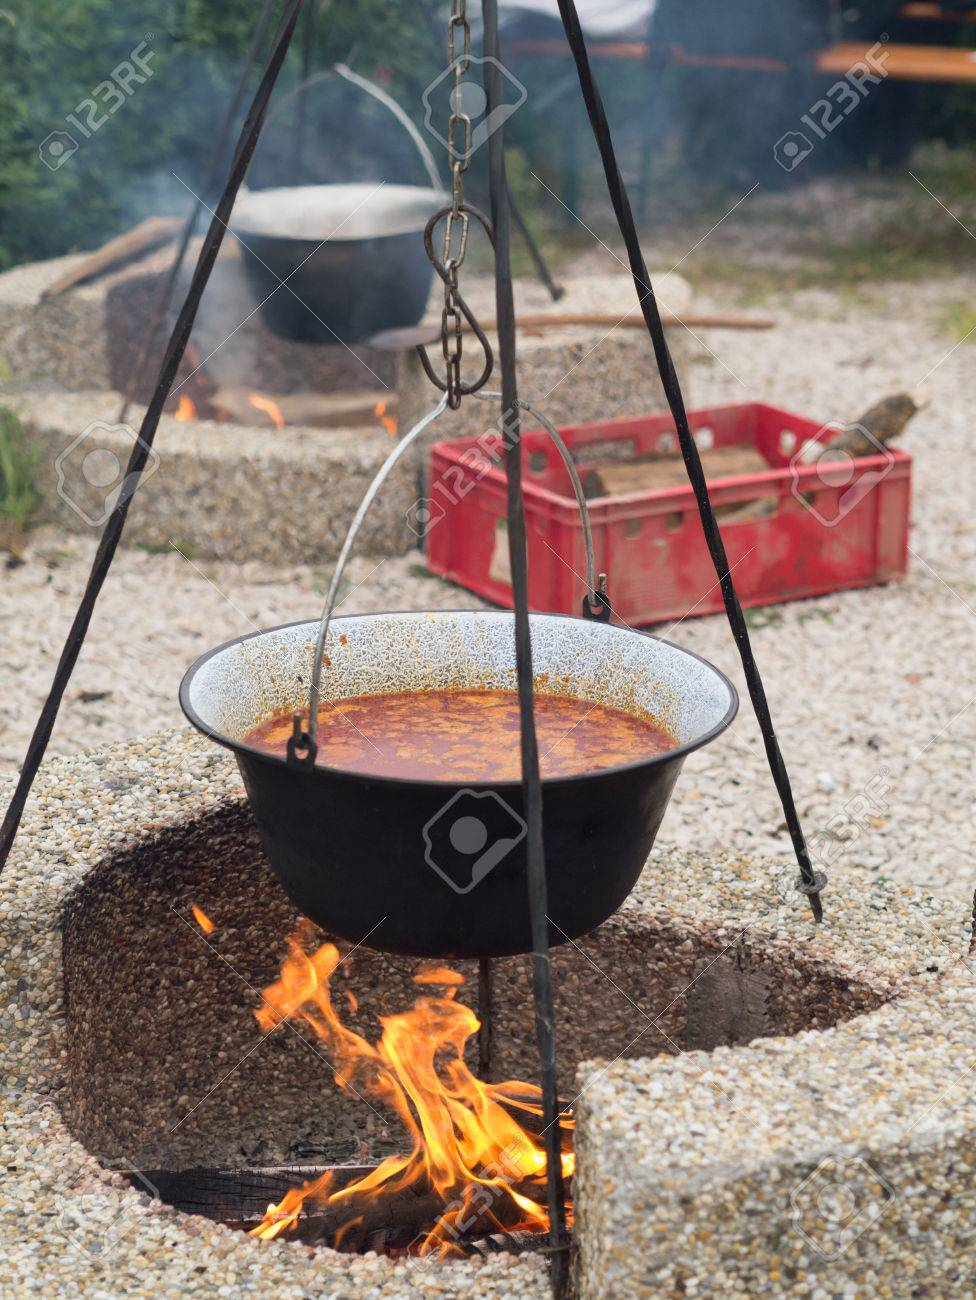 Hungarian Goulash Cooked In A Stew Pot On An Open Fire Stock Photo Picture And Royalty Free Image Image 55285389